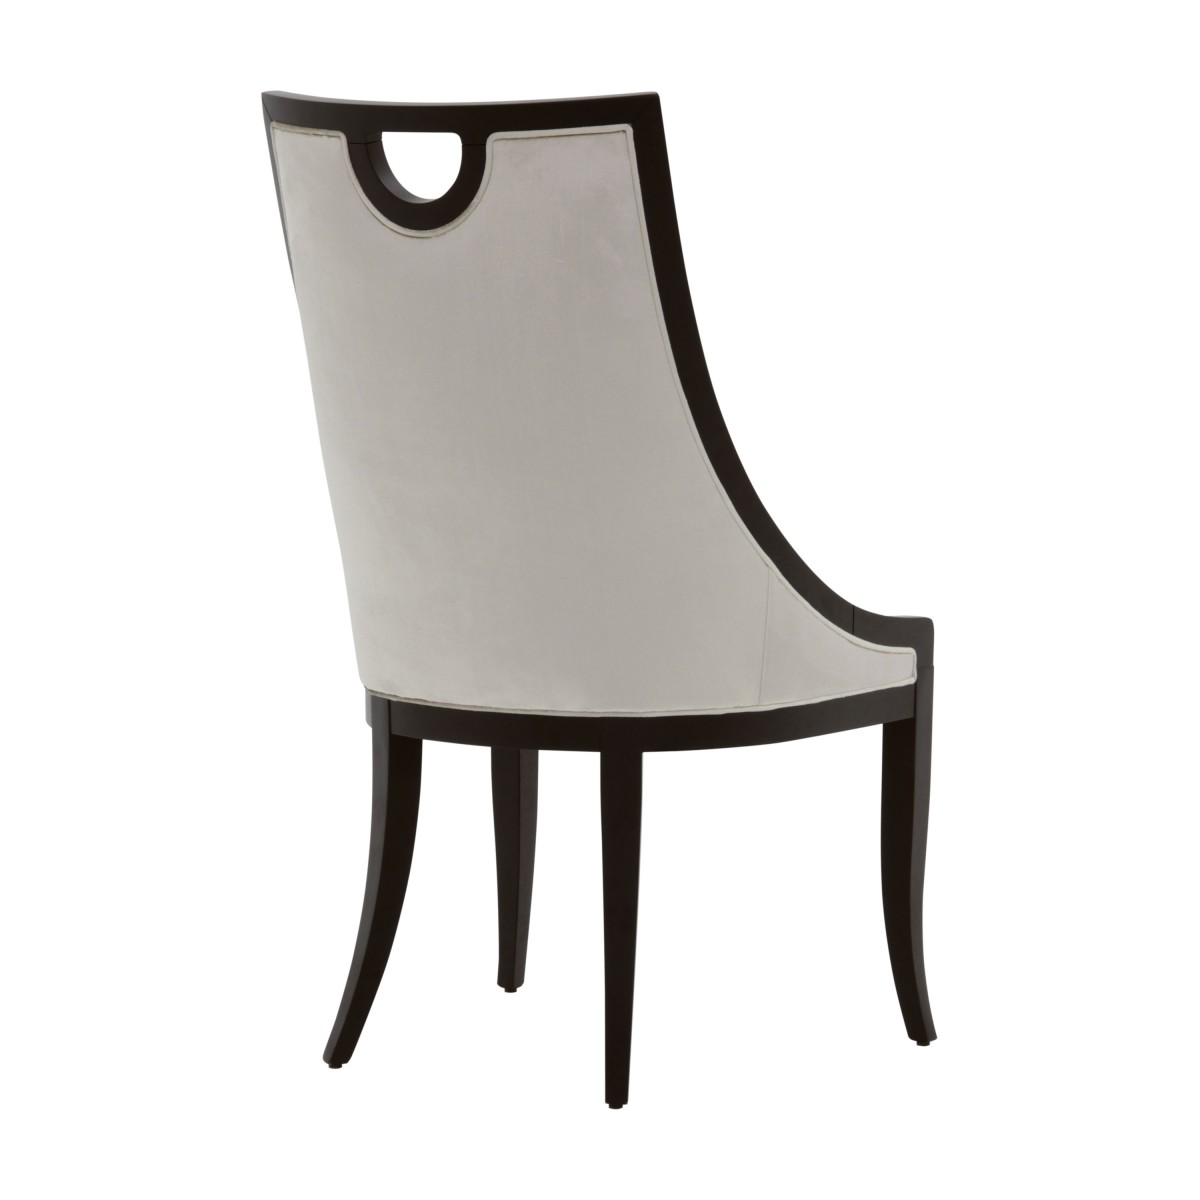 classic chair astra 2 8691